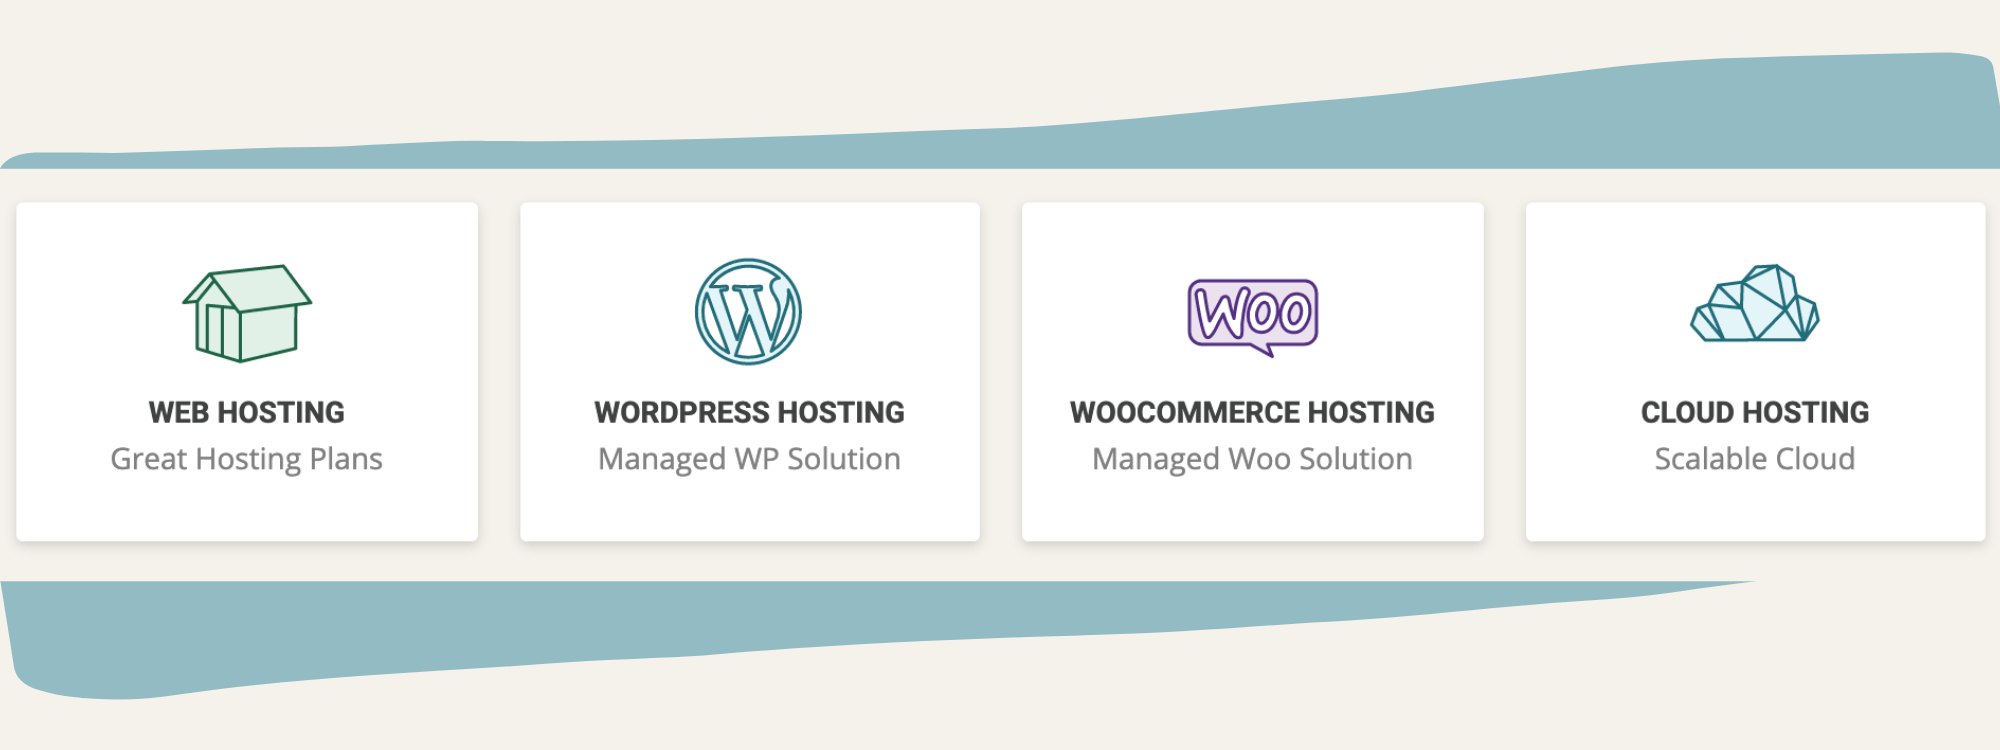 SiteGround: A Great Option for WordPress Hosting